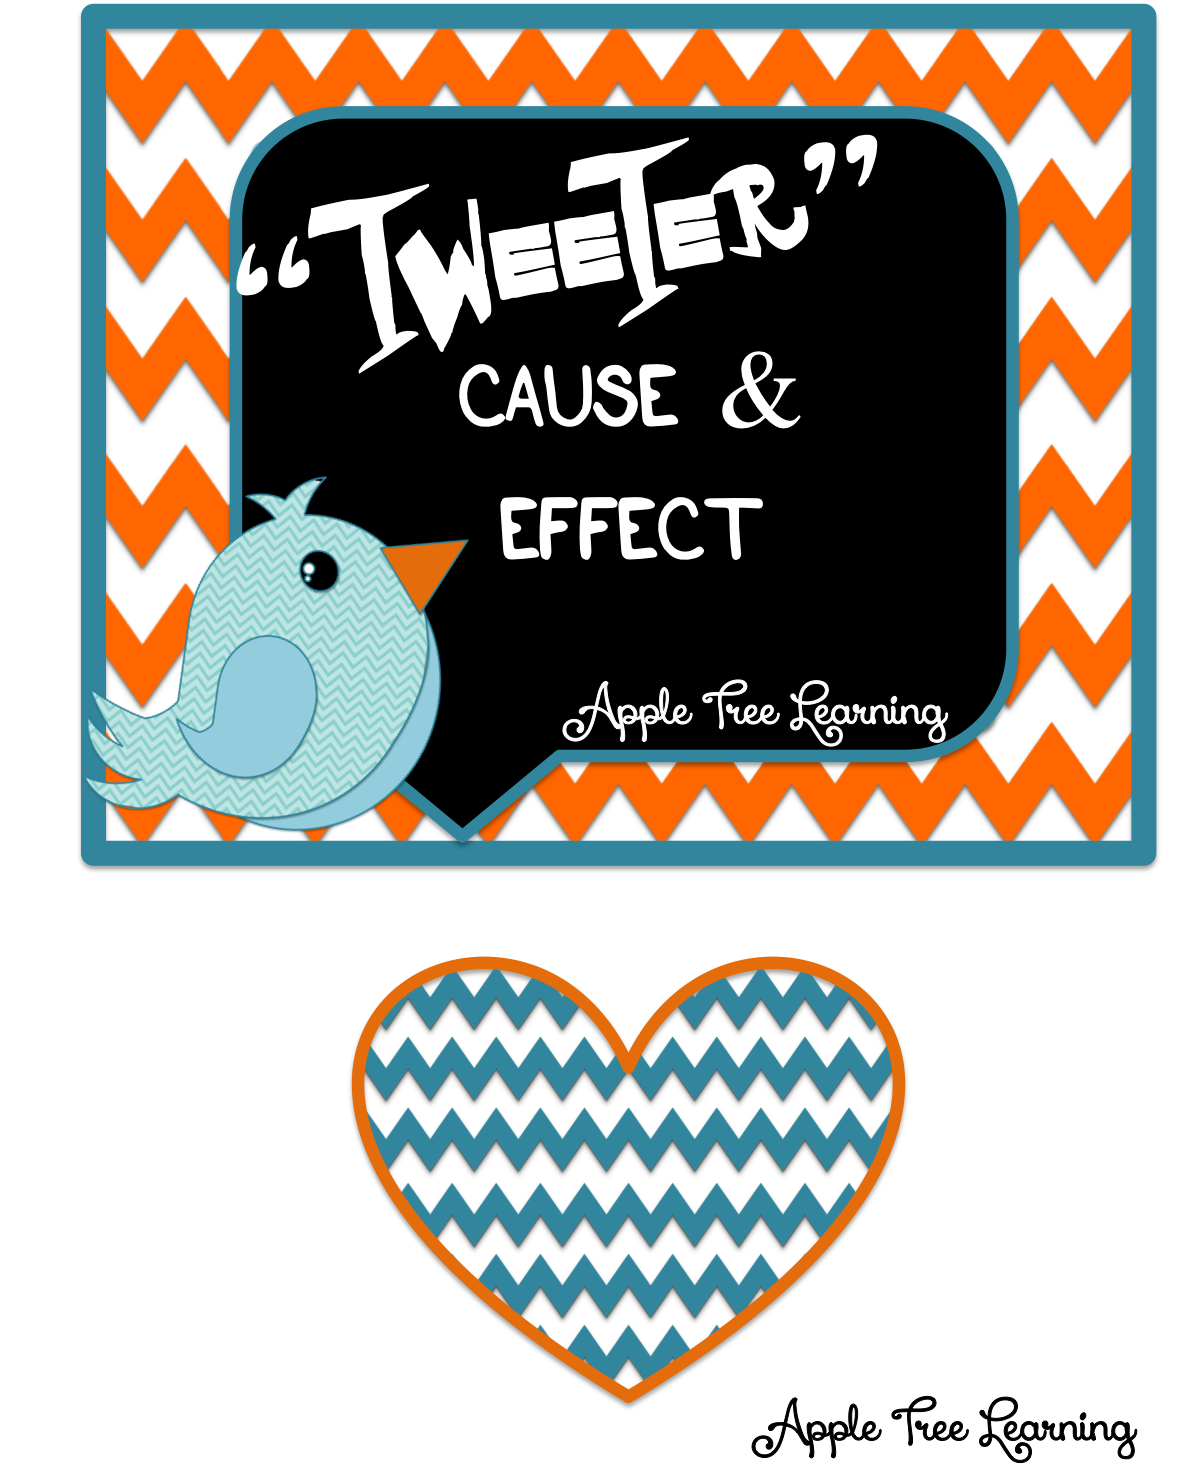 Cause Amp Effect Twitter Kit With Images